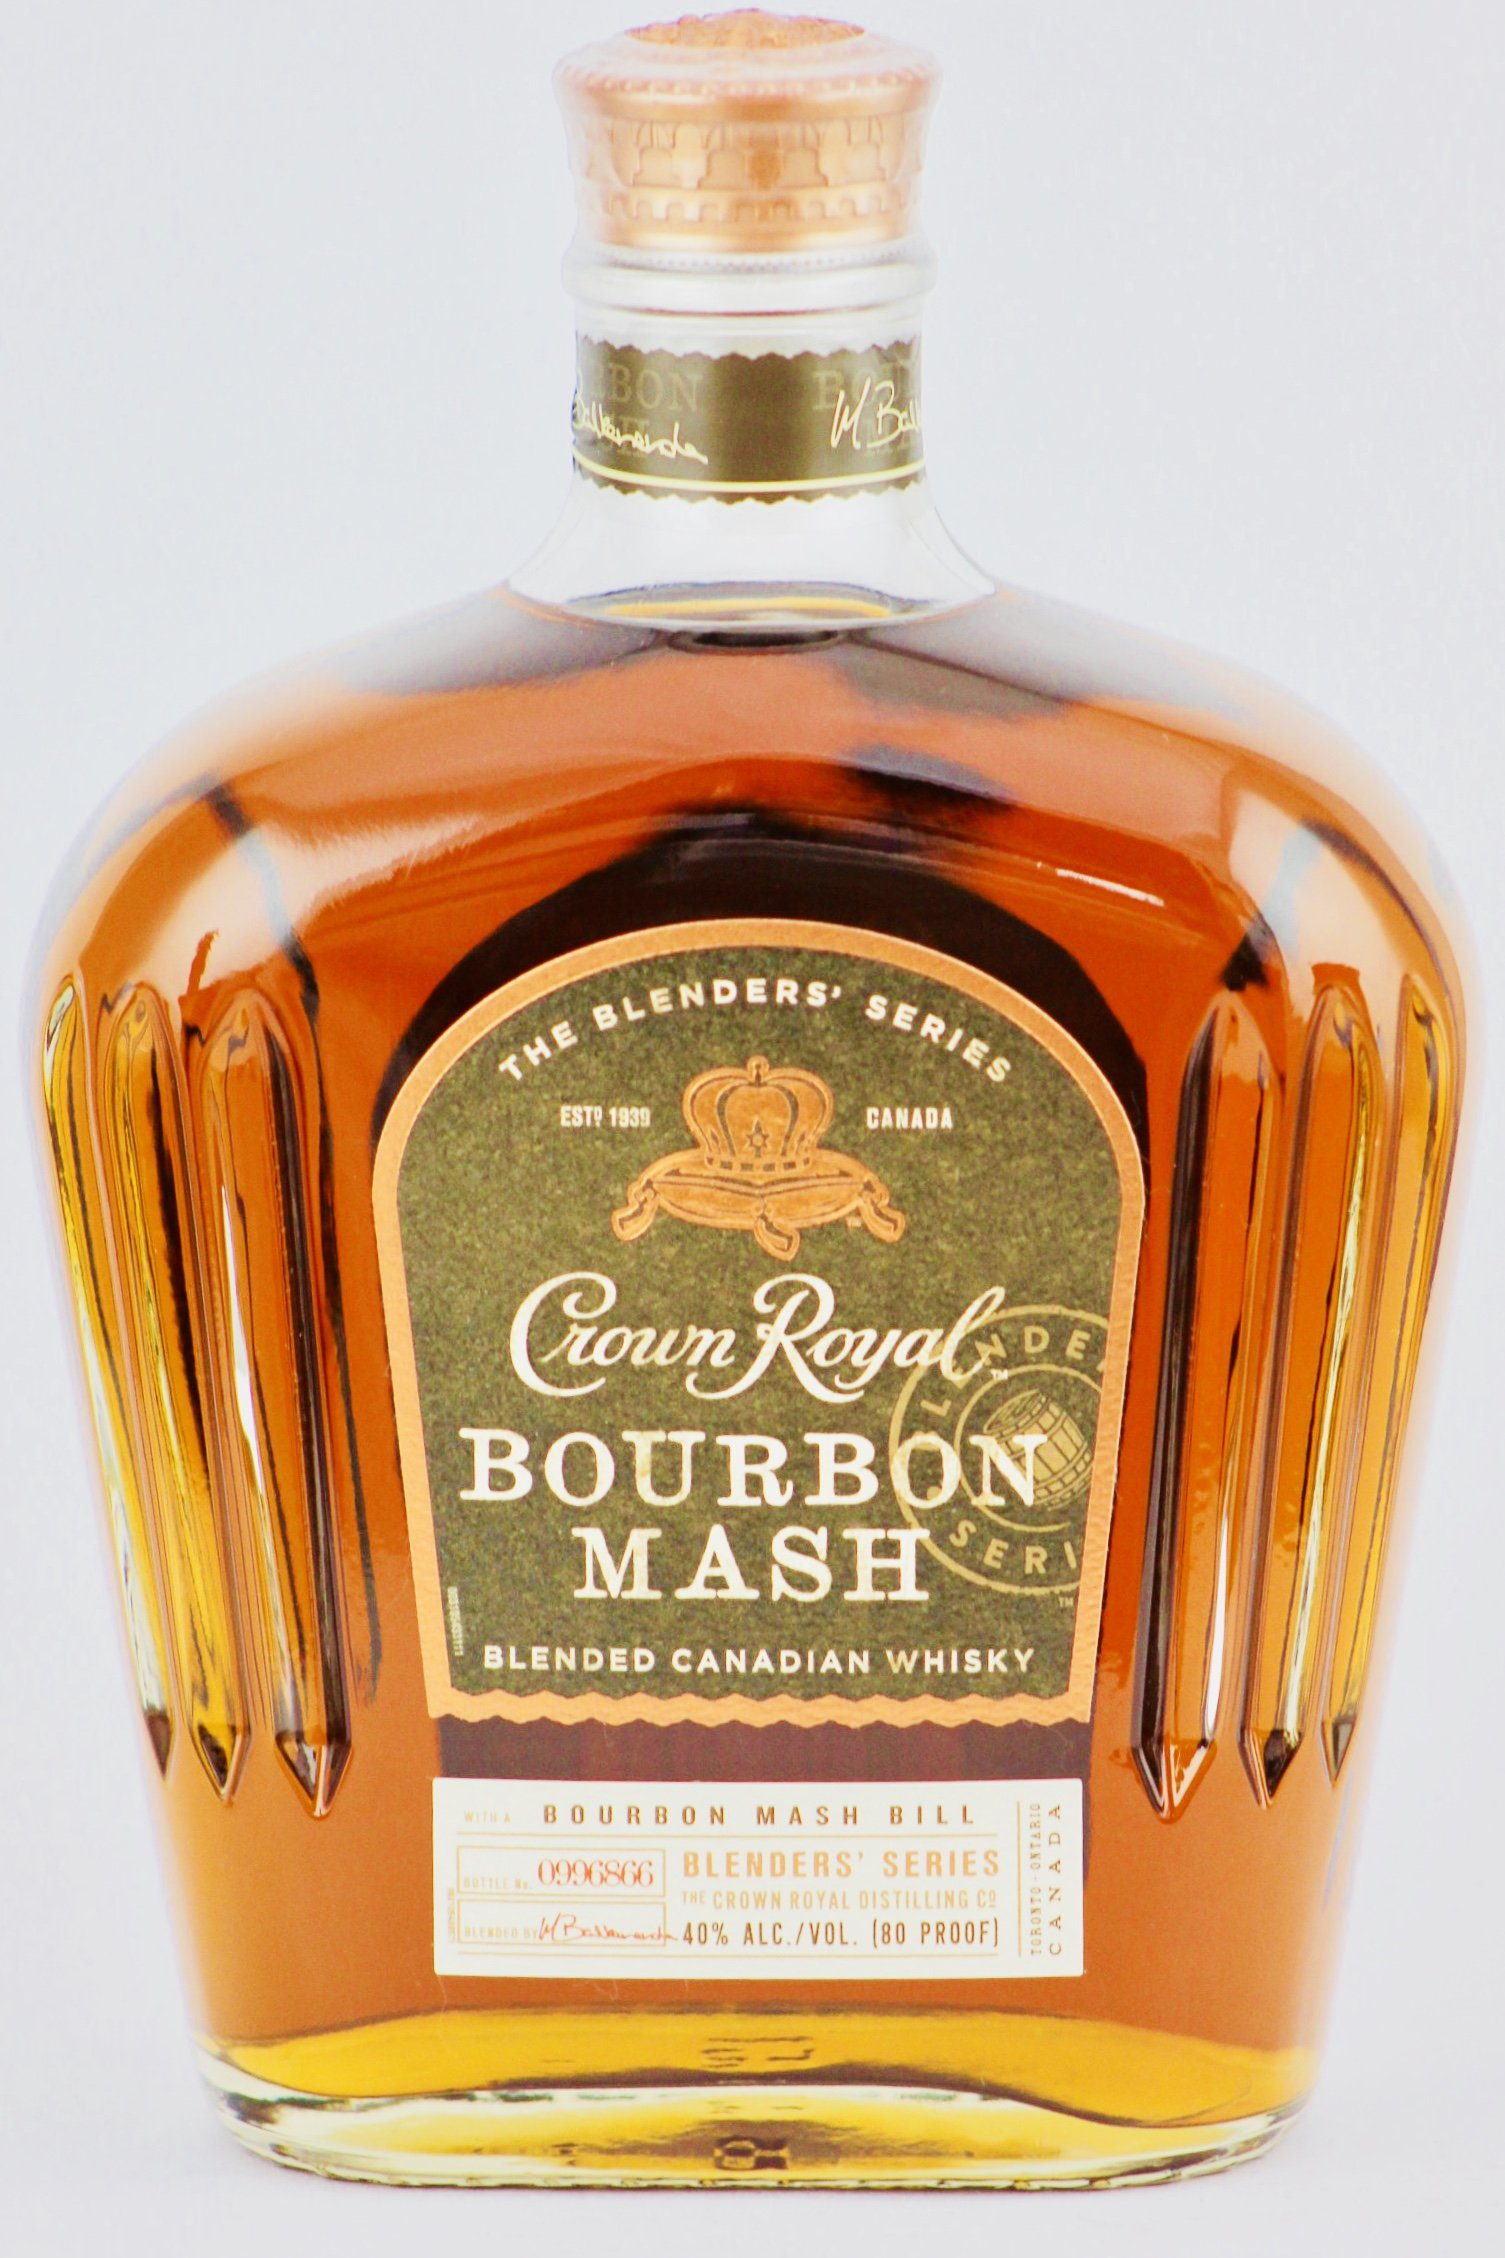 Crown Royal Bourbon Mash Canadian Whisky - 750ml